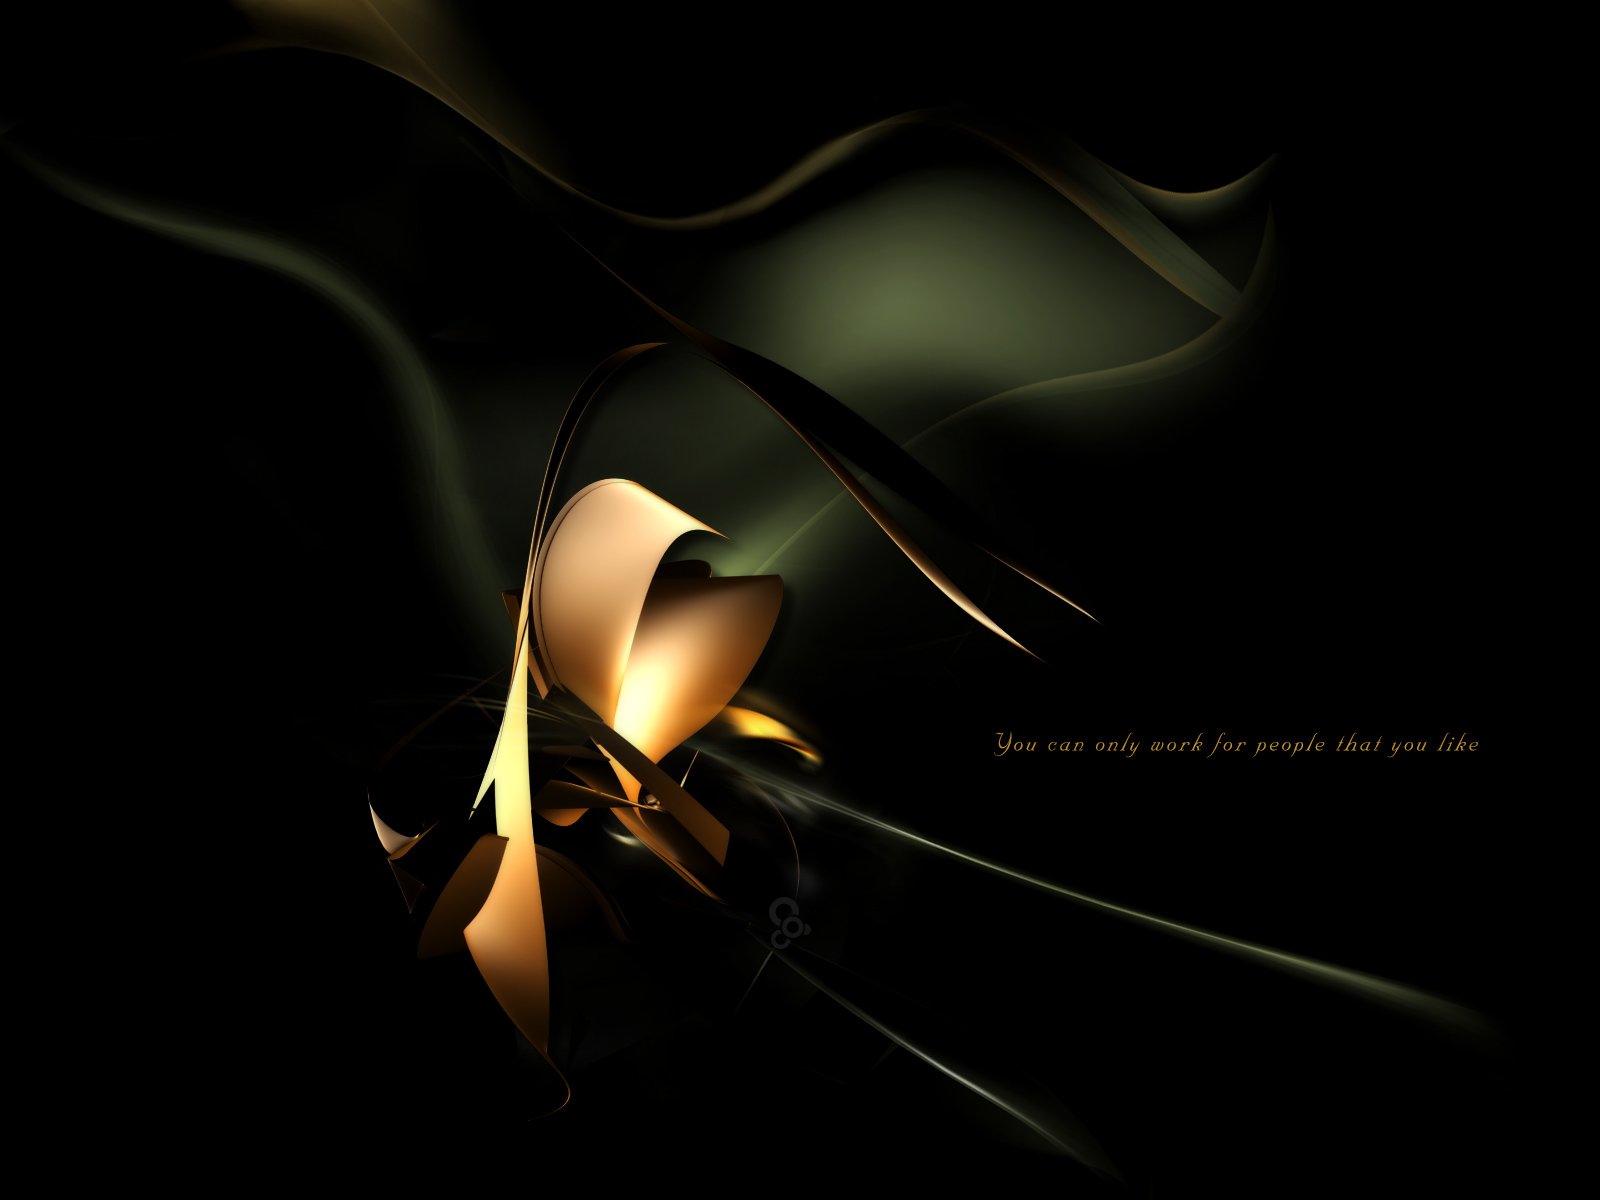 Kinds of wallpapers 3d black wallpapers for Black 3d wallpaper